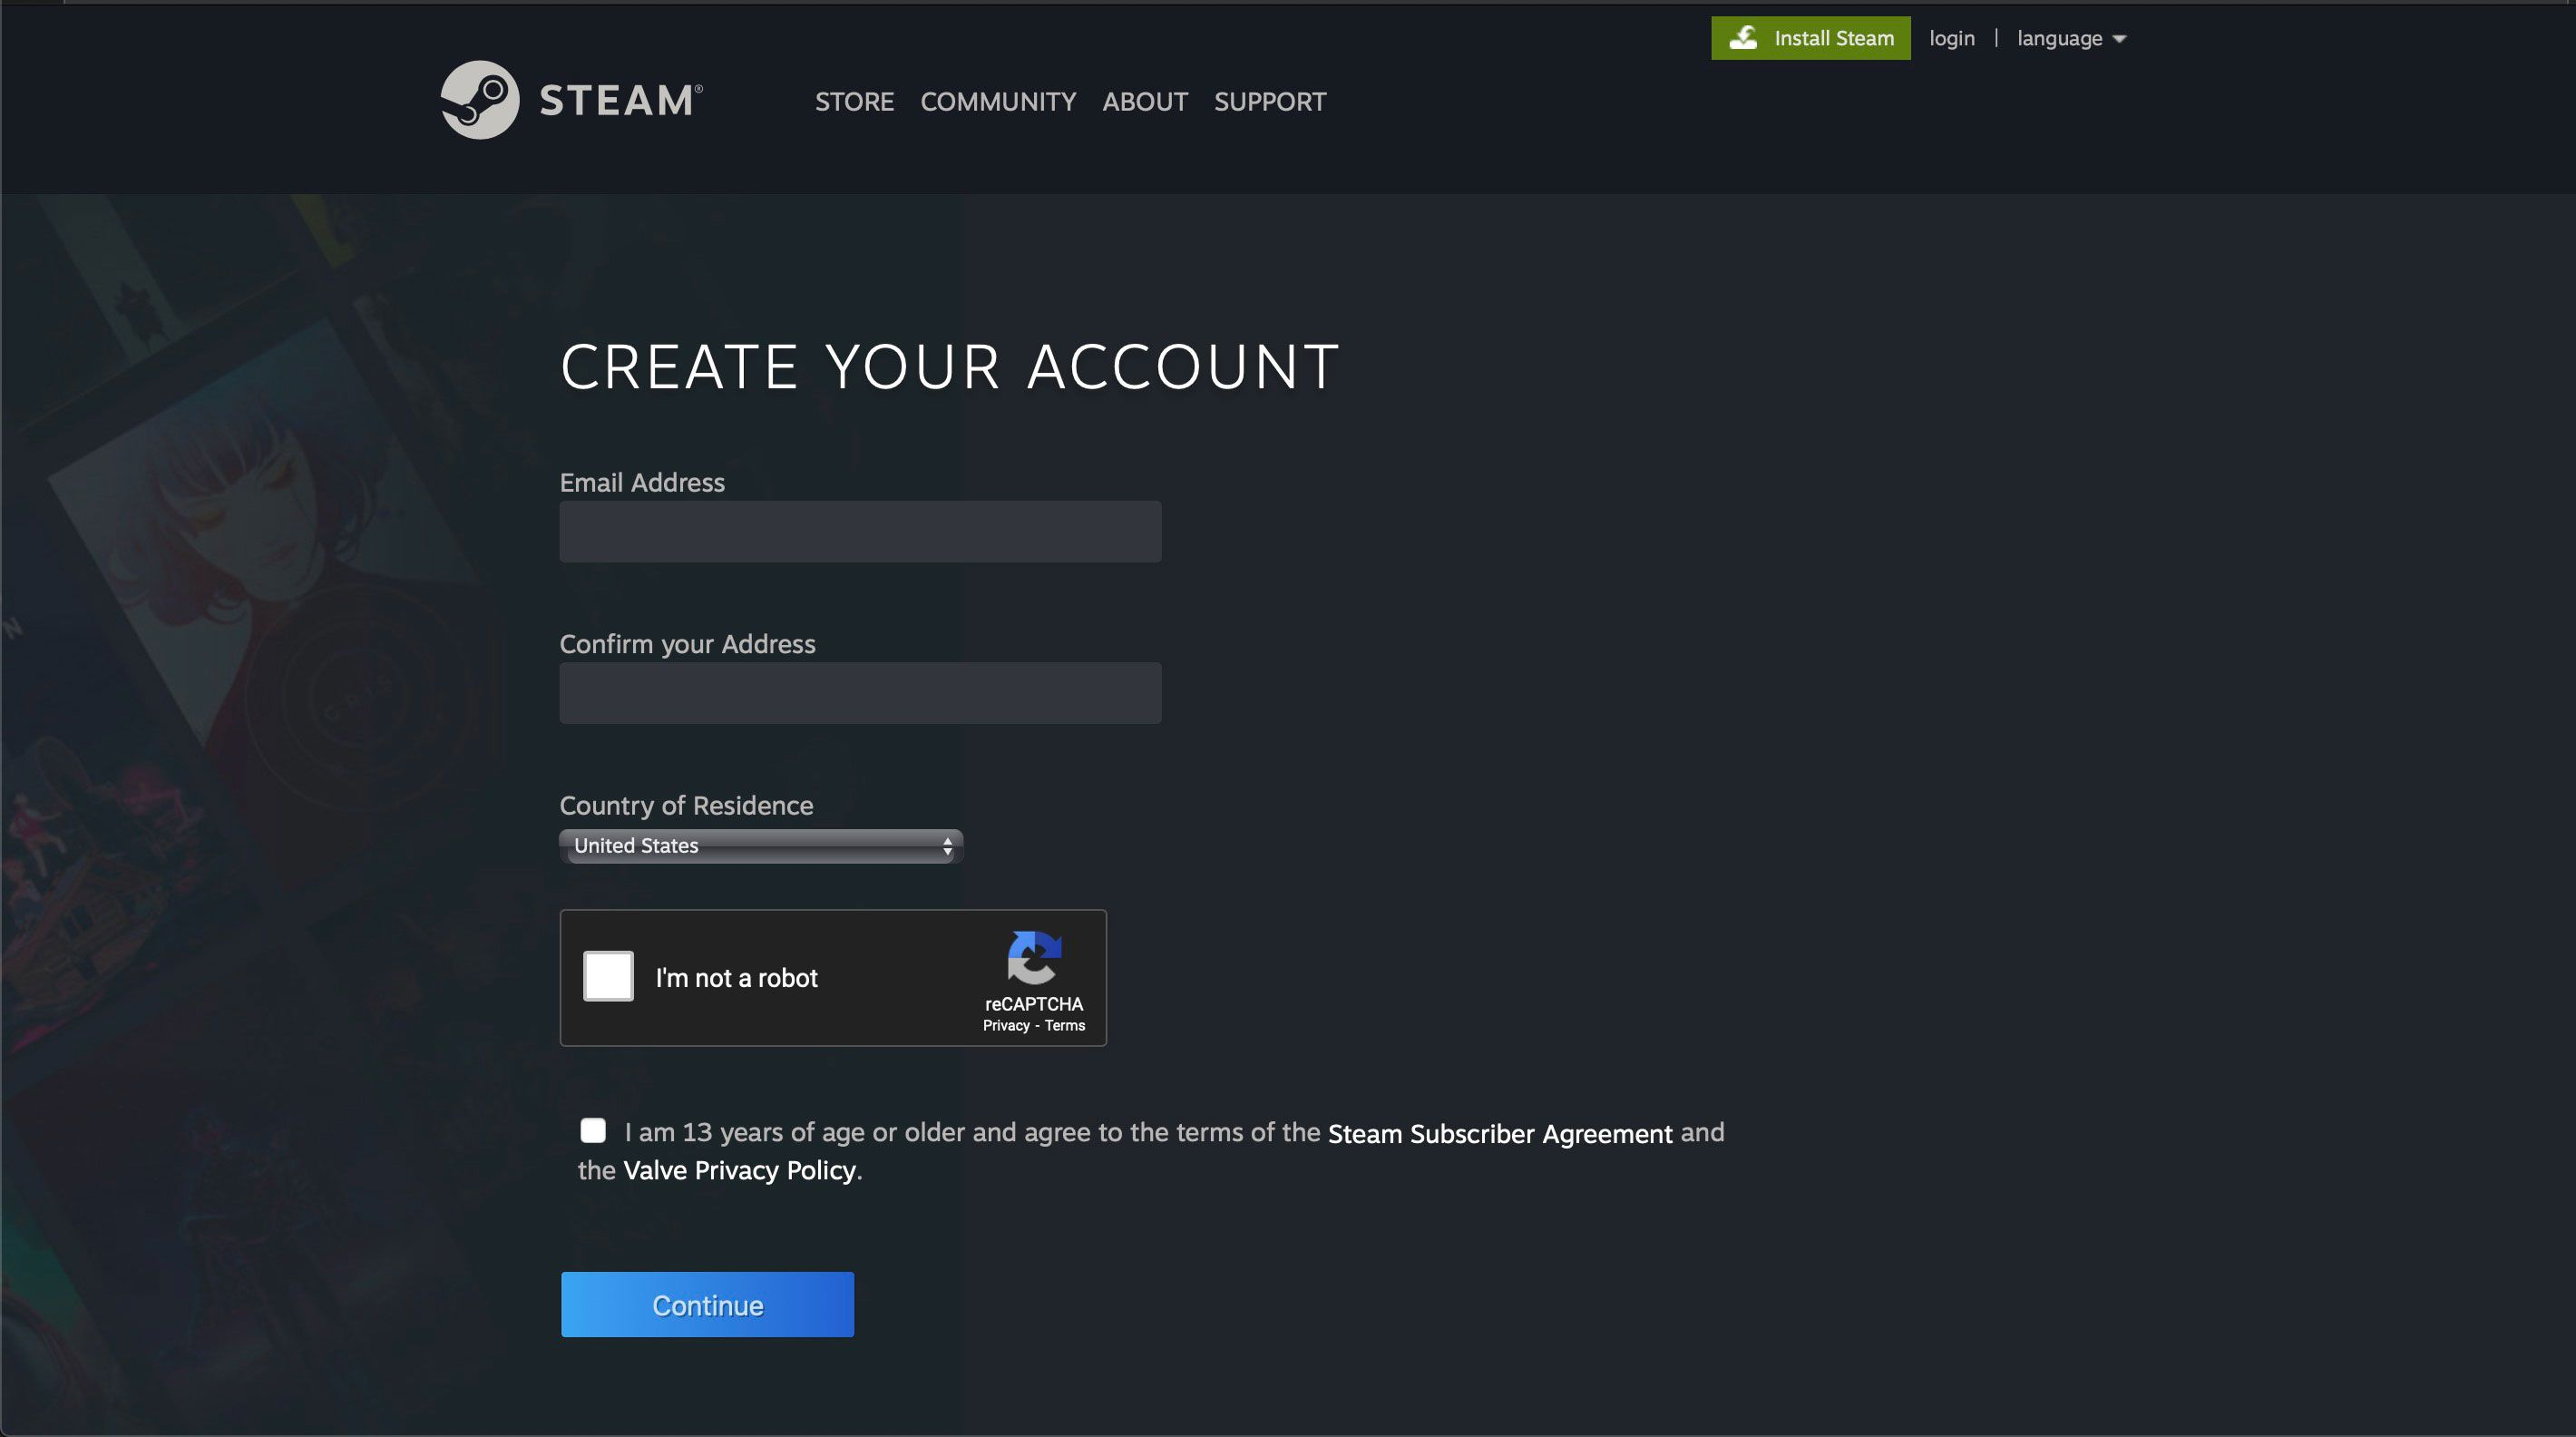 The Create Your Account screen on Steam